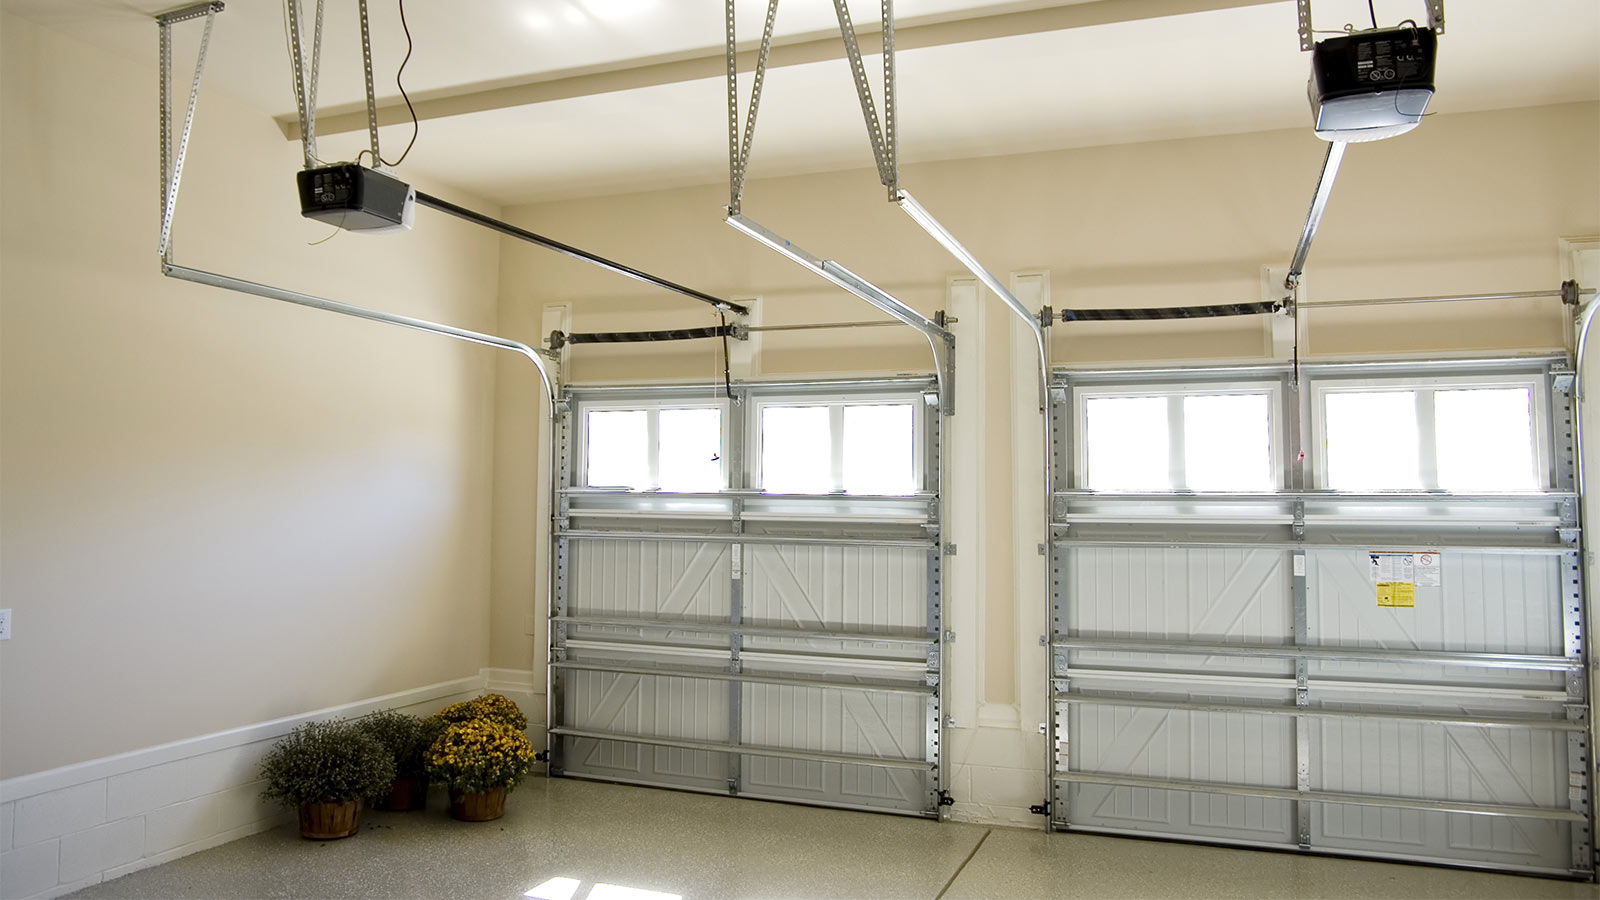 Sectional Garage Doors from Window Roller Shutters Rochford suppliers.